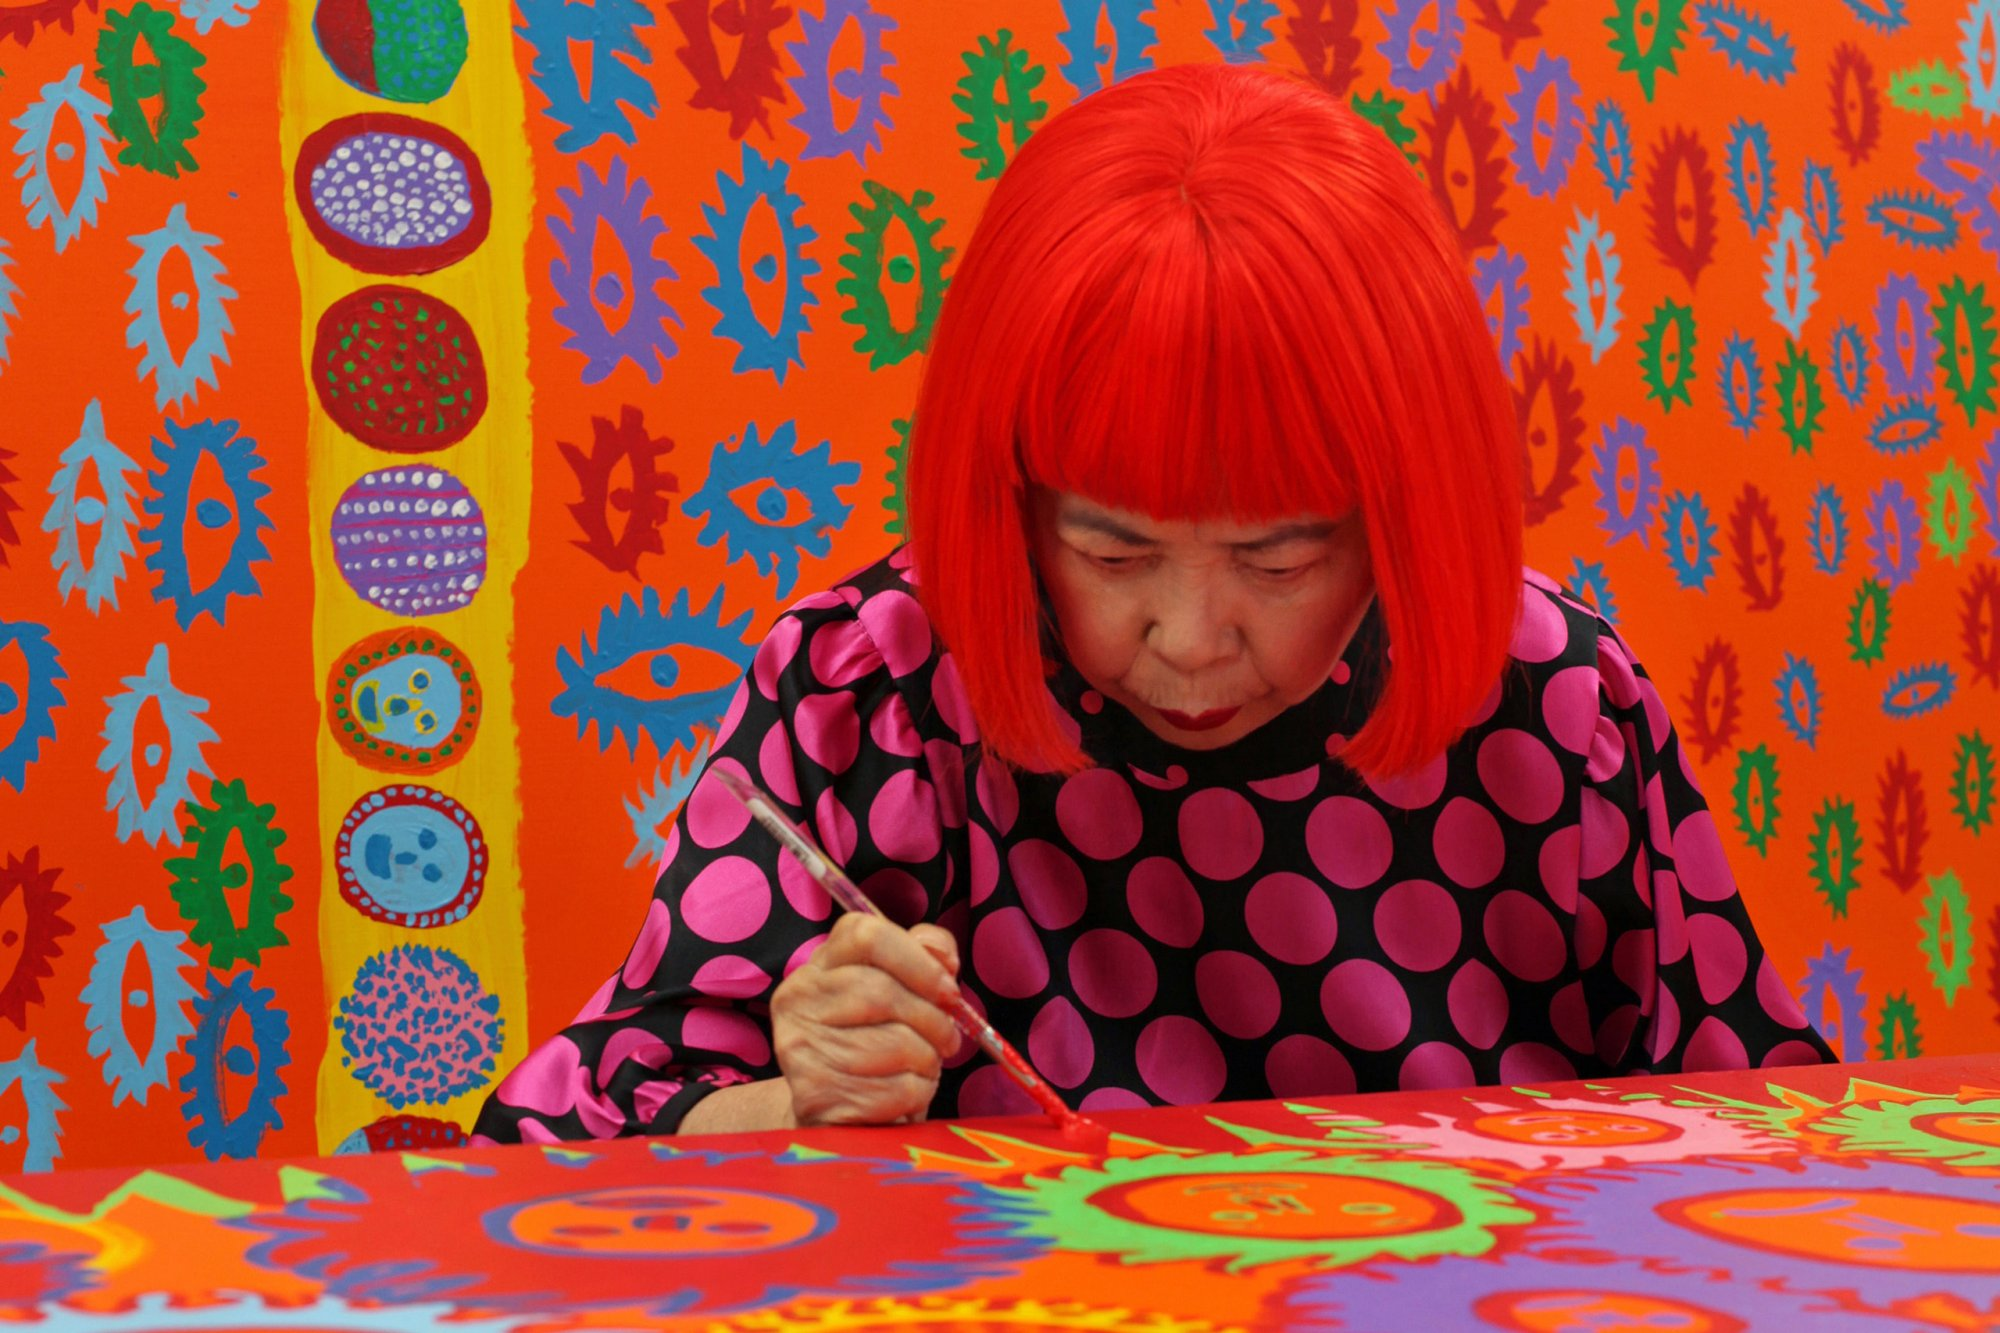 Yayoi kusama life is the heart of a rainbow exhibition at the national gallery of singapore